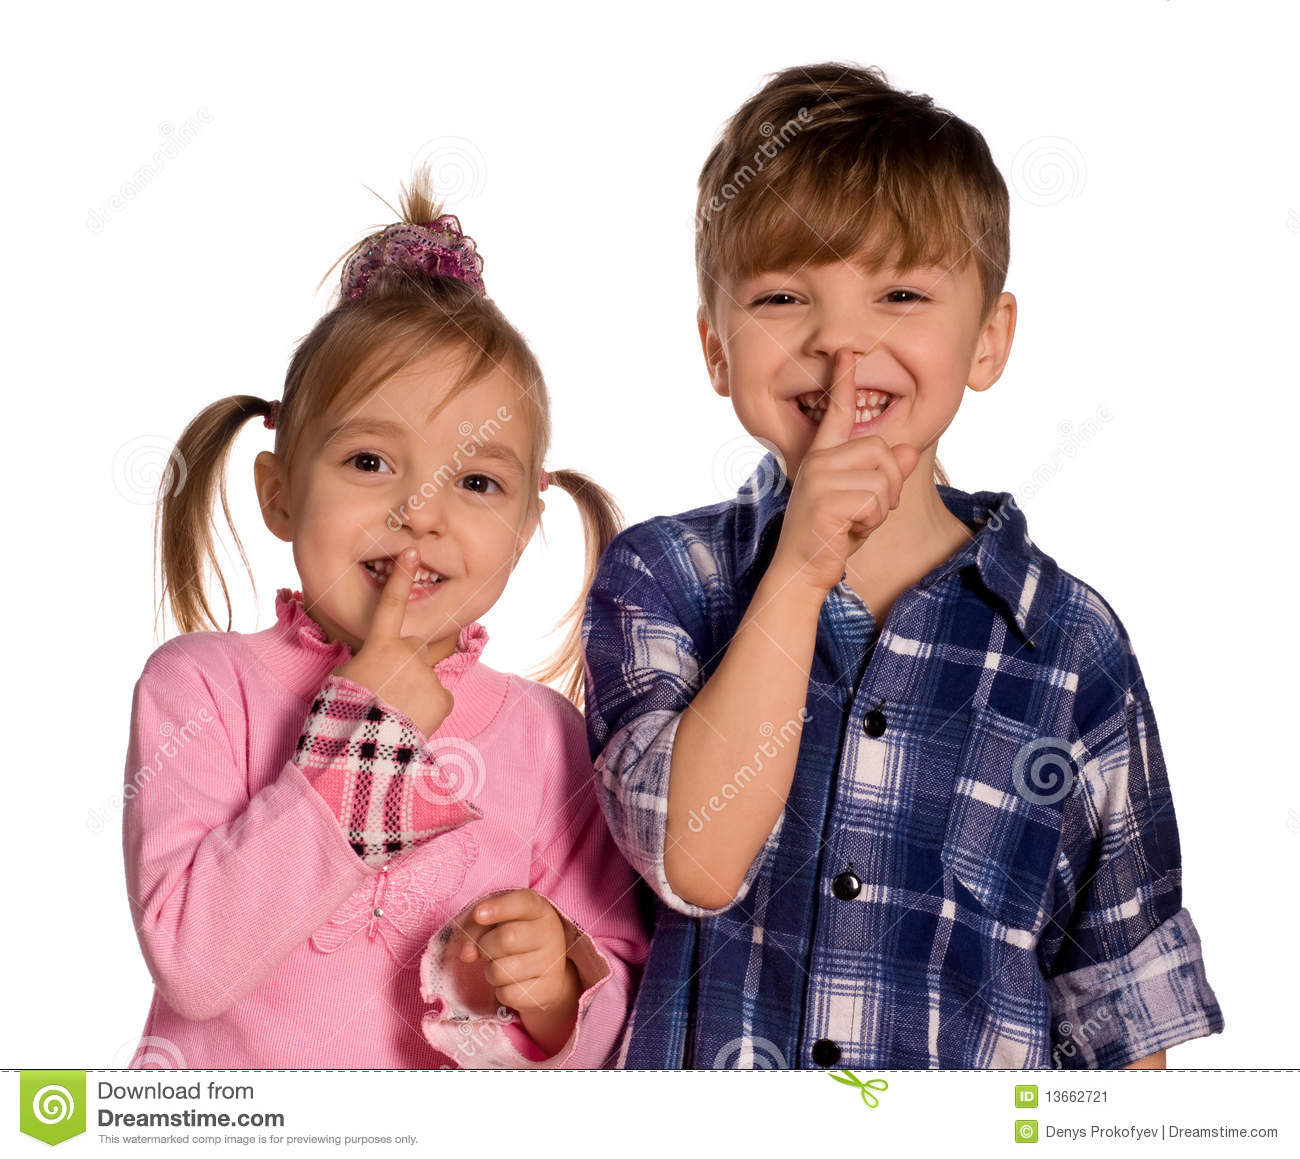 boys and girl Boys and girls are each harder in different ways every child is an individual, of course his or her innate personality helps shape how life unfolds.